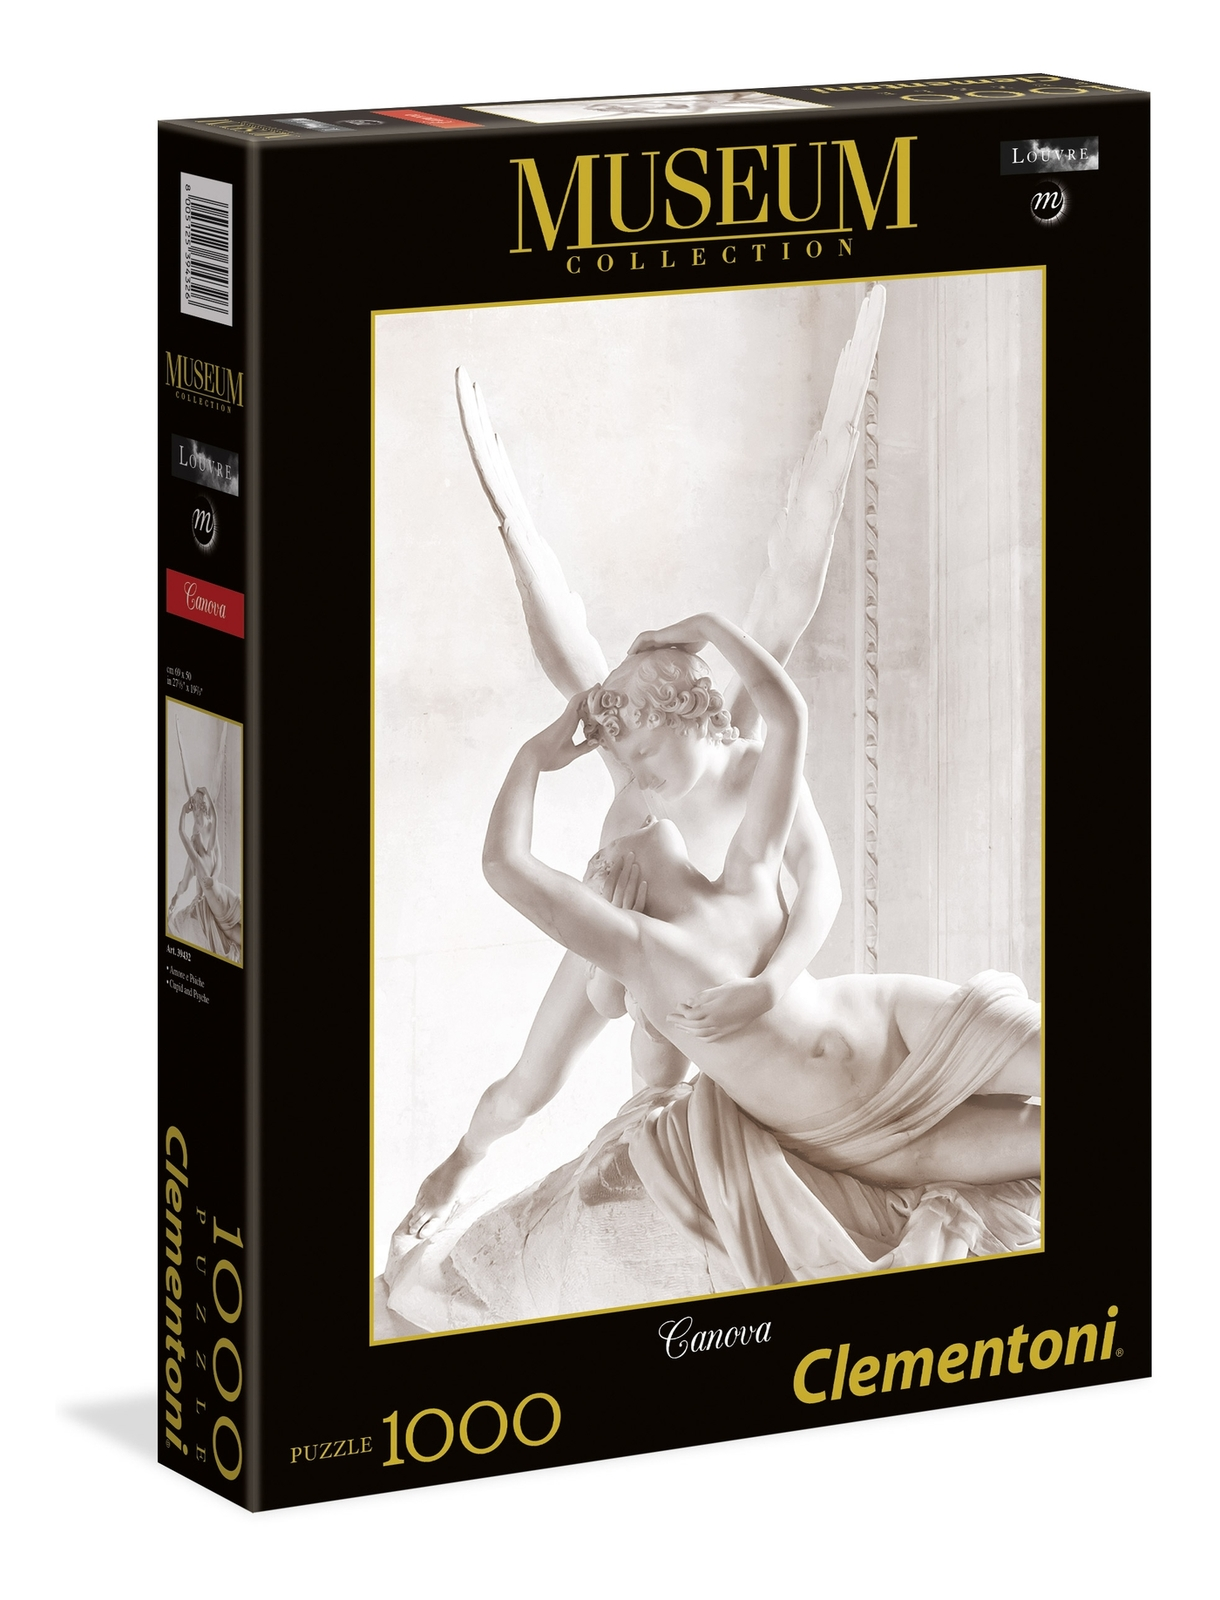 Clementoni Museum: 1000-Piece Puzzle - Cupid and Psyche image